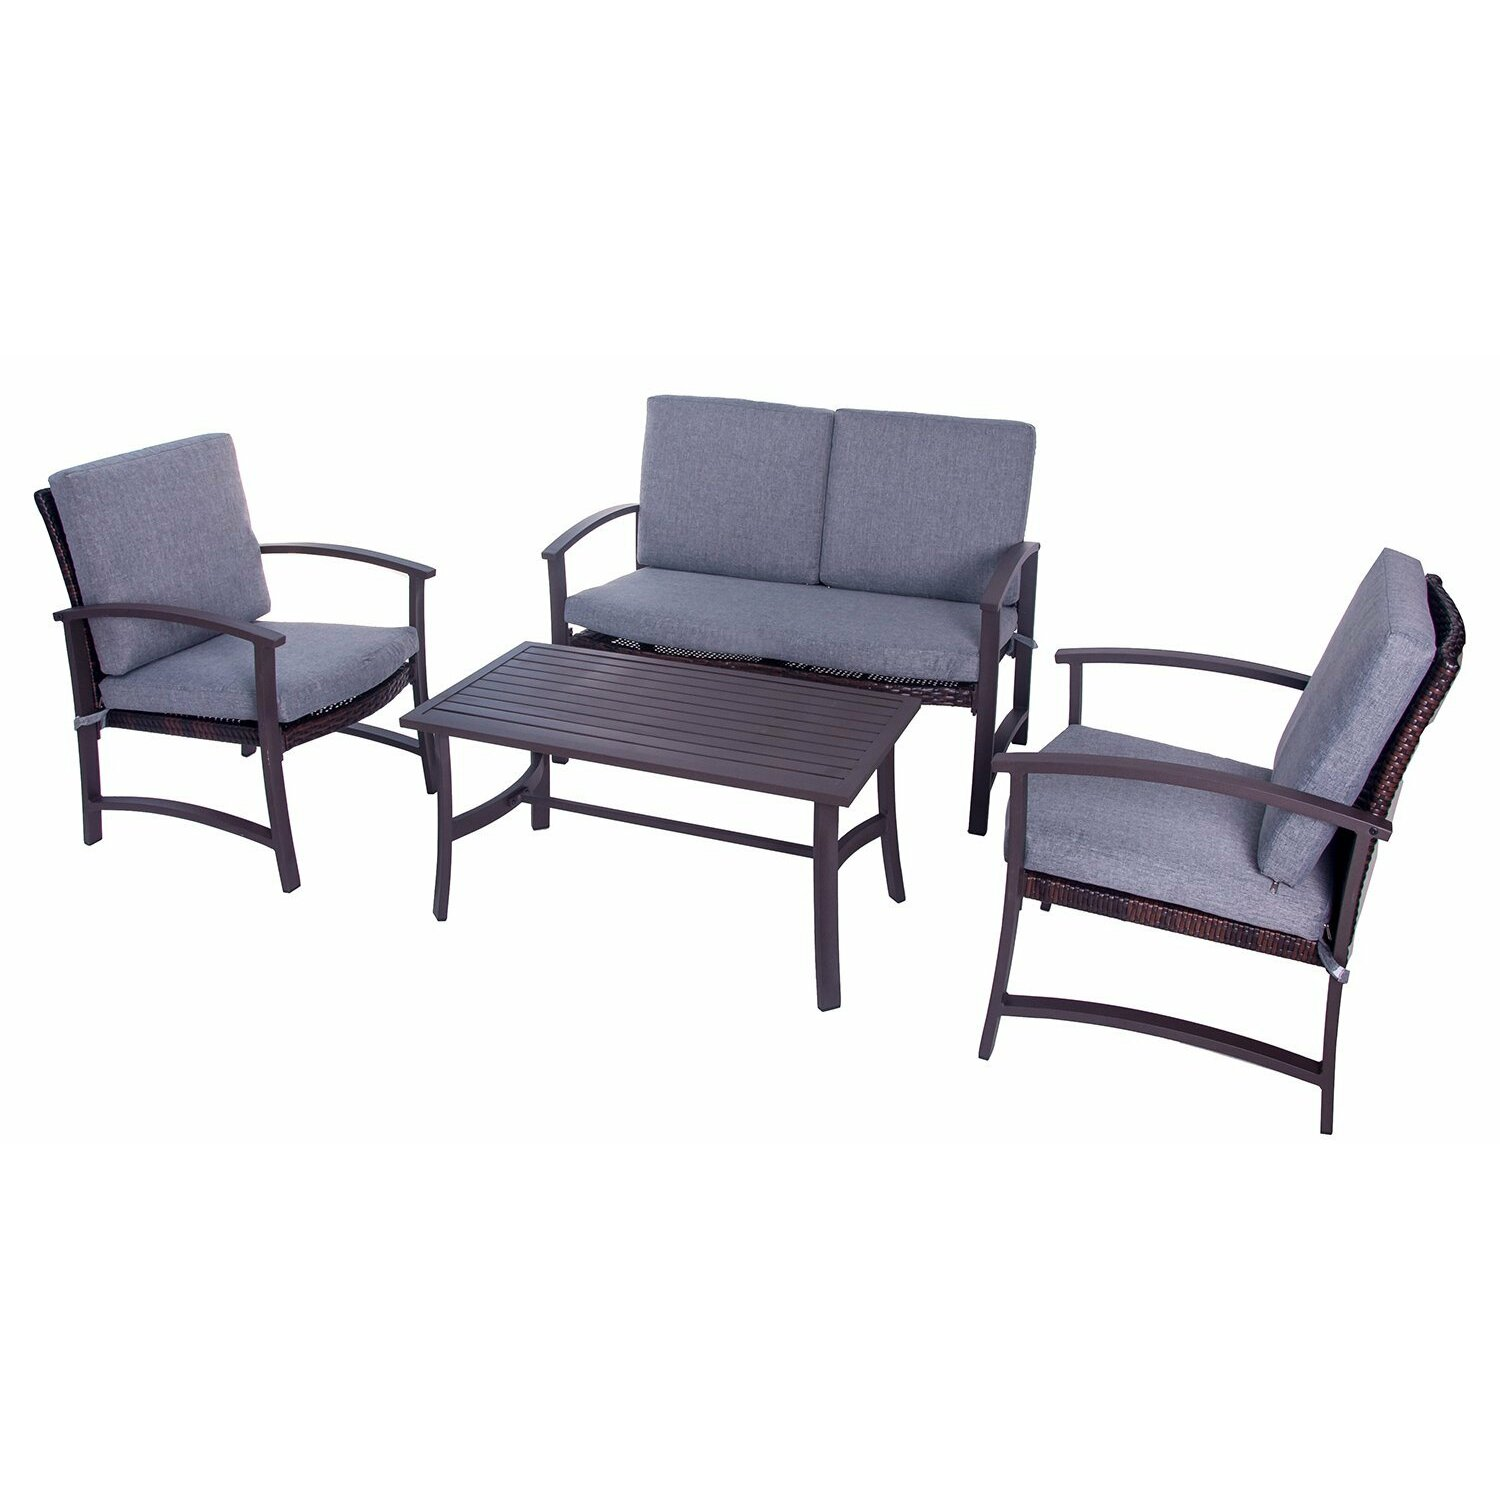 Merax 4 piece deep seating group with cushion wayfair for Outdoor furniture 4 piece